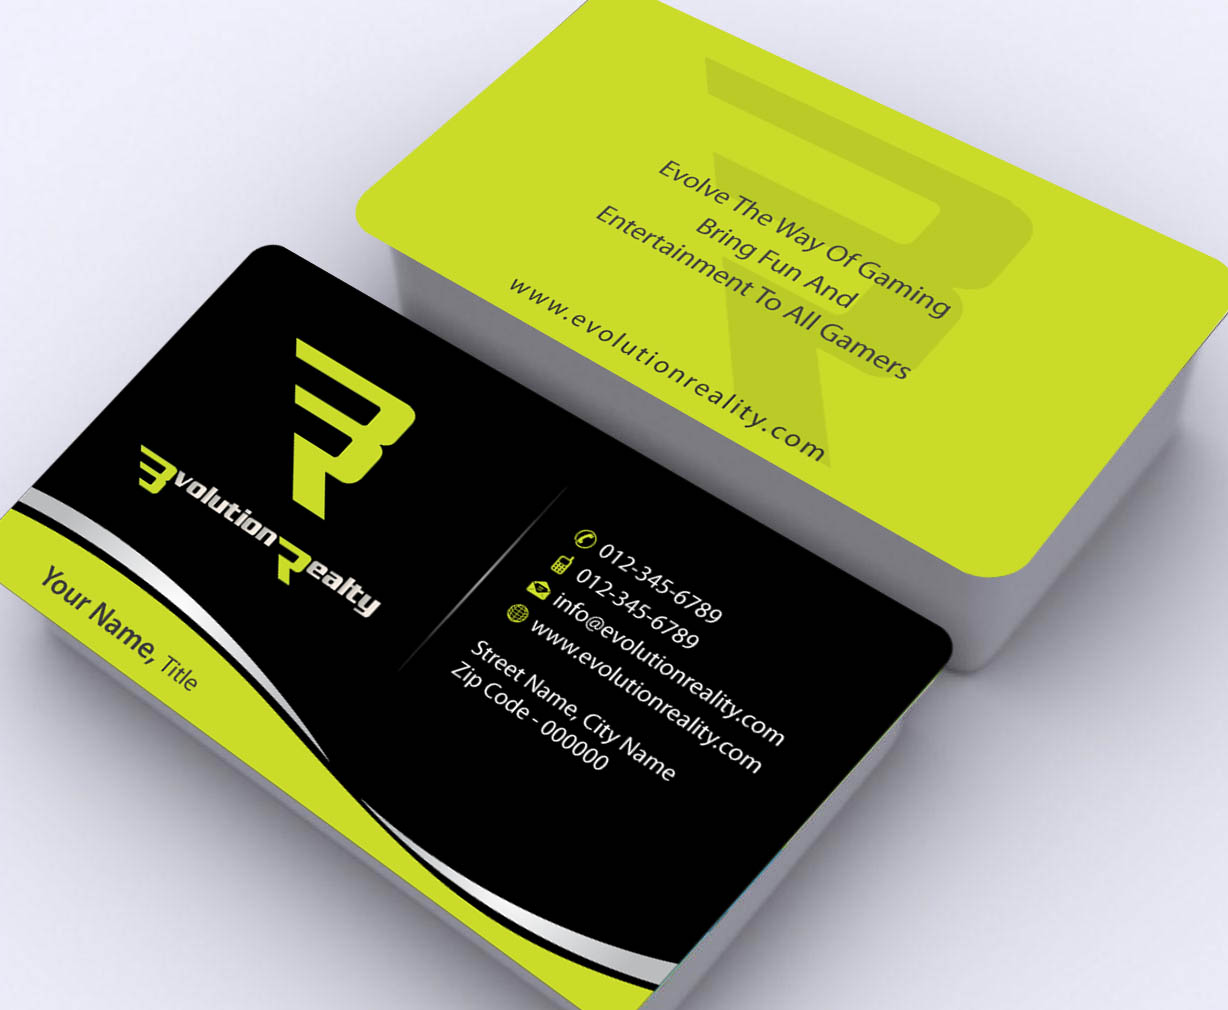 Business card design for desmond tang by sbss design for Game designer business cards